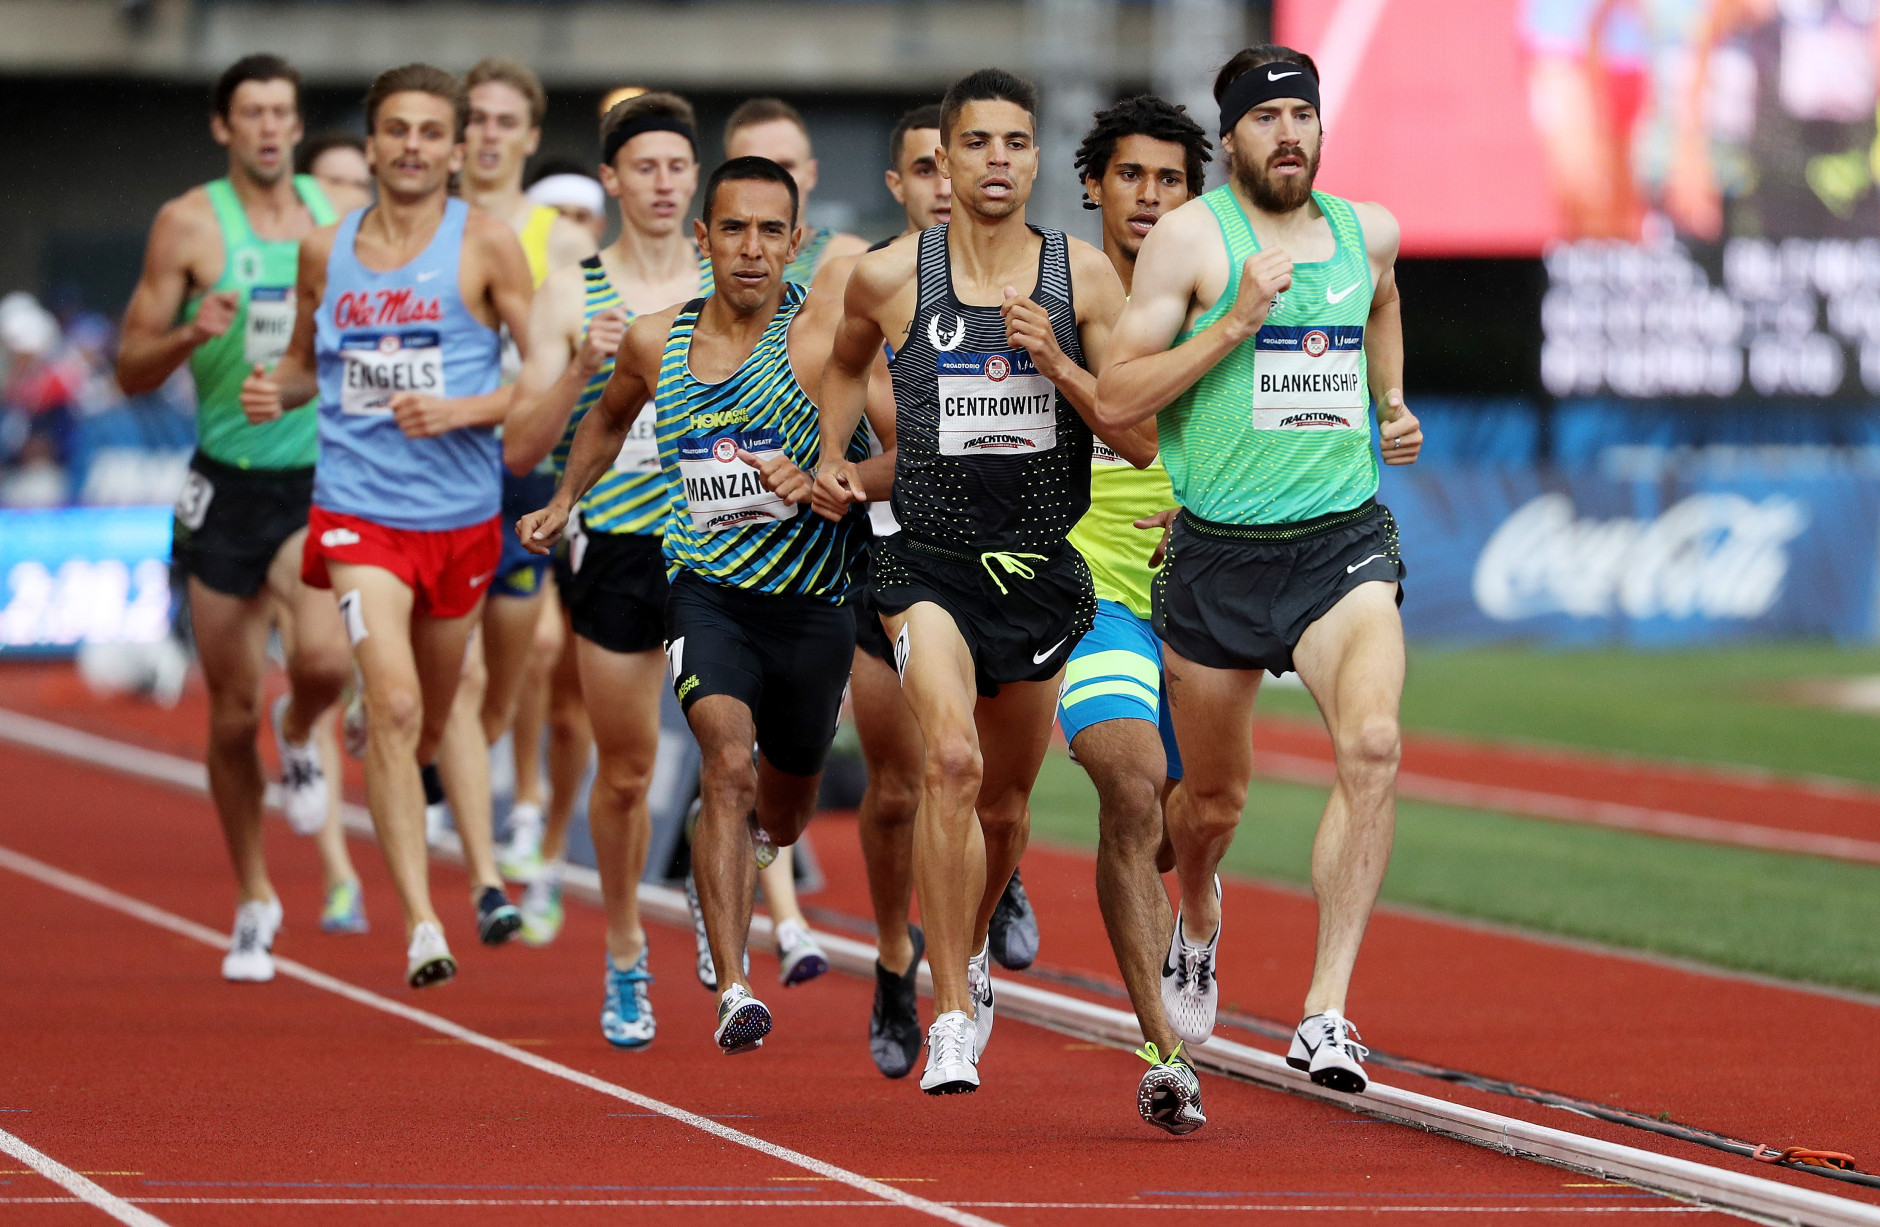 EUGENE, OR - JULY 10:  Matthew Centrowitz and 	Ben Blankenship compete in the Men's 1500 Meter Final during the 2016 U.S. Olympic Track & Field Team Trials at Hayward Field on July 10, 2016 in Eugene, Oregon.  (Photo by Patrick Smith/Getty Images)